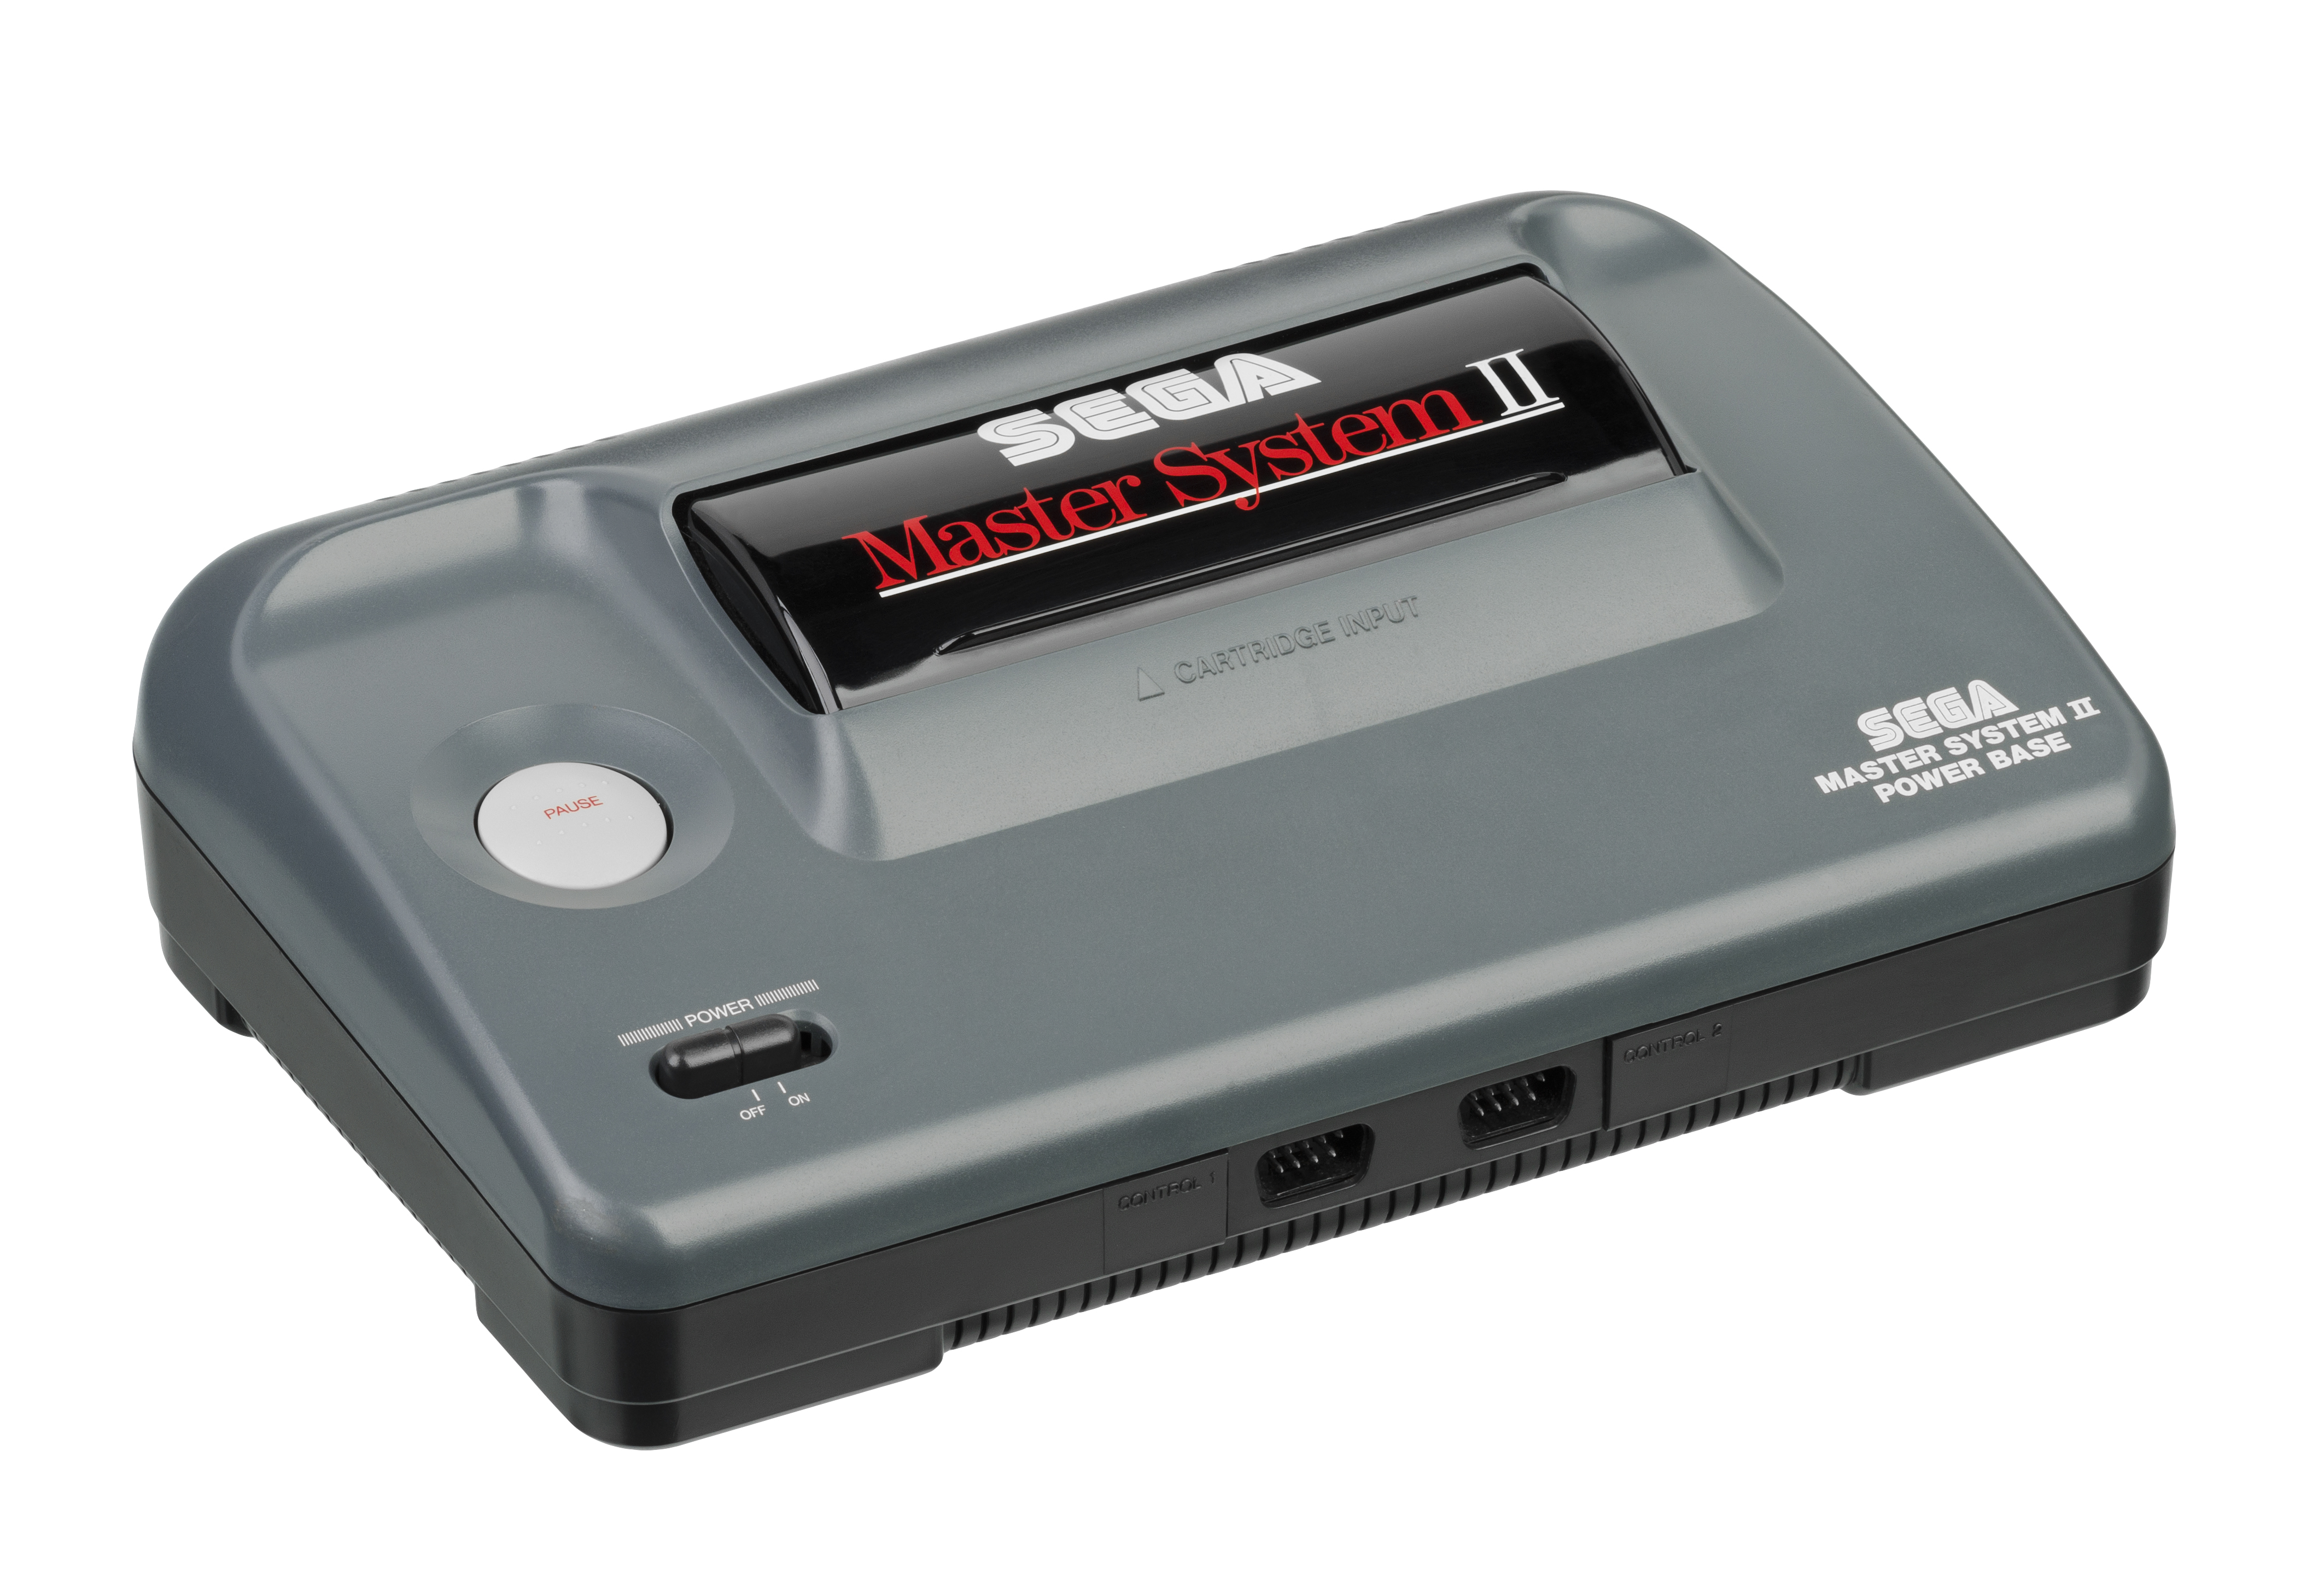 economized version of the Master System, with omitted the card slot and non-RF video out. It came a game or two built into the system, which depended on the region